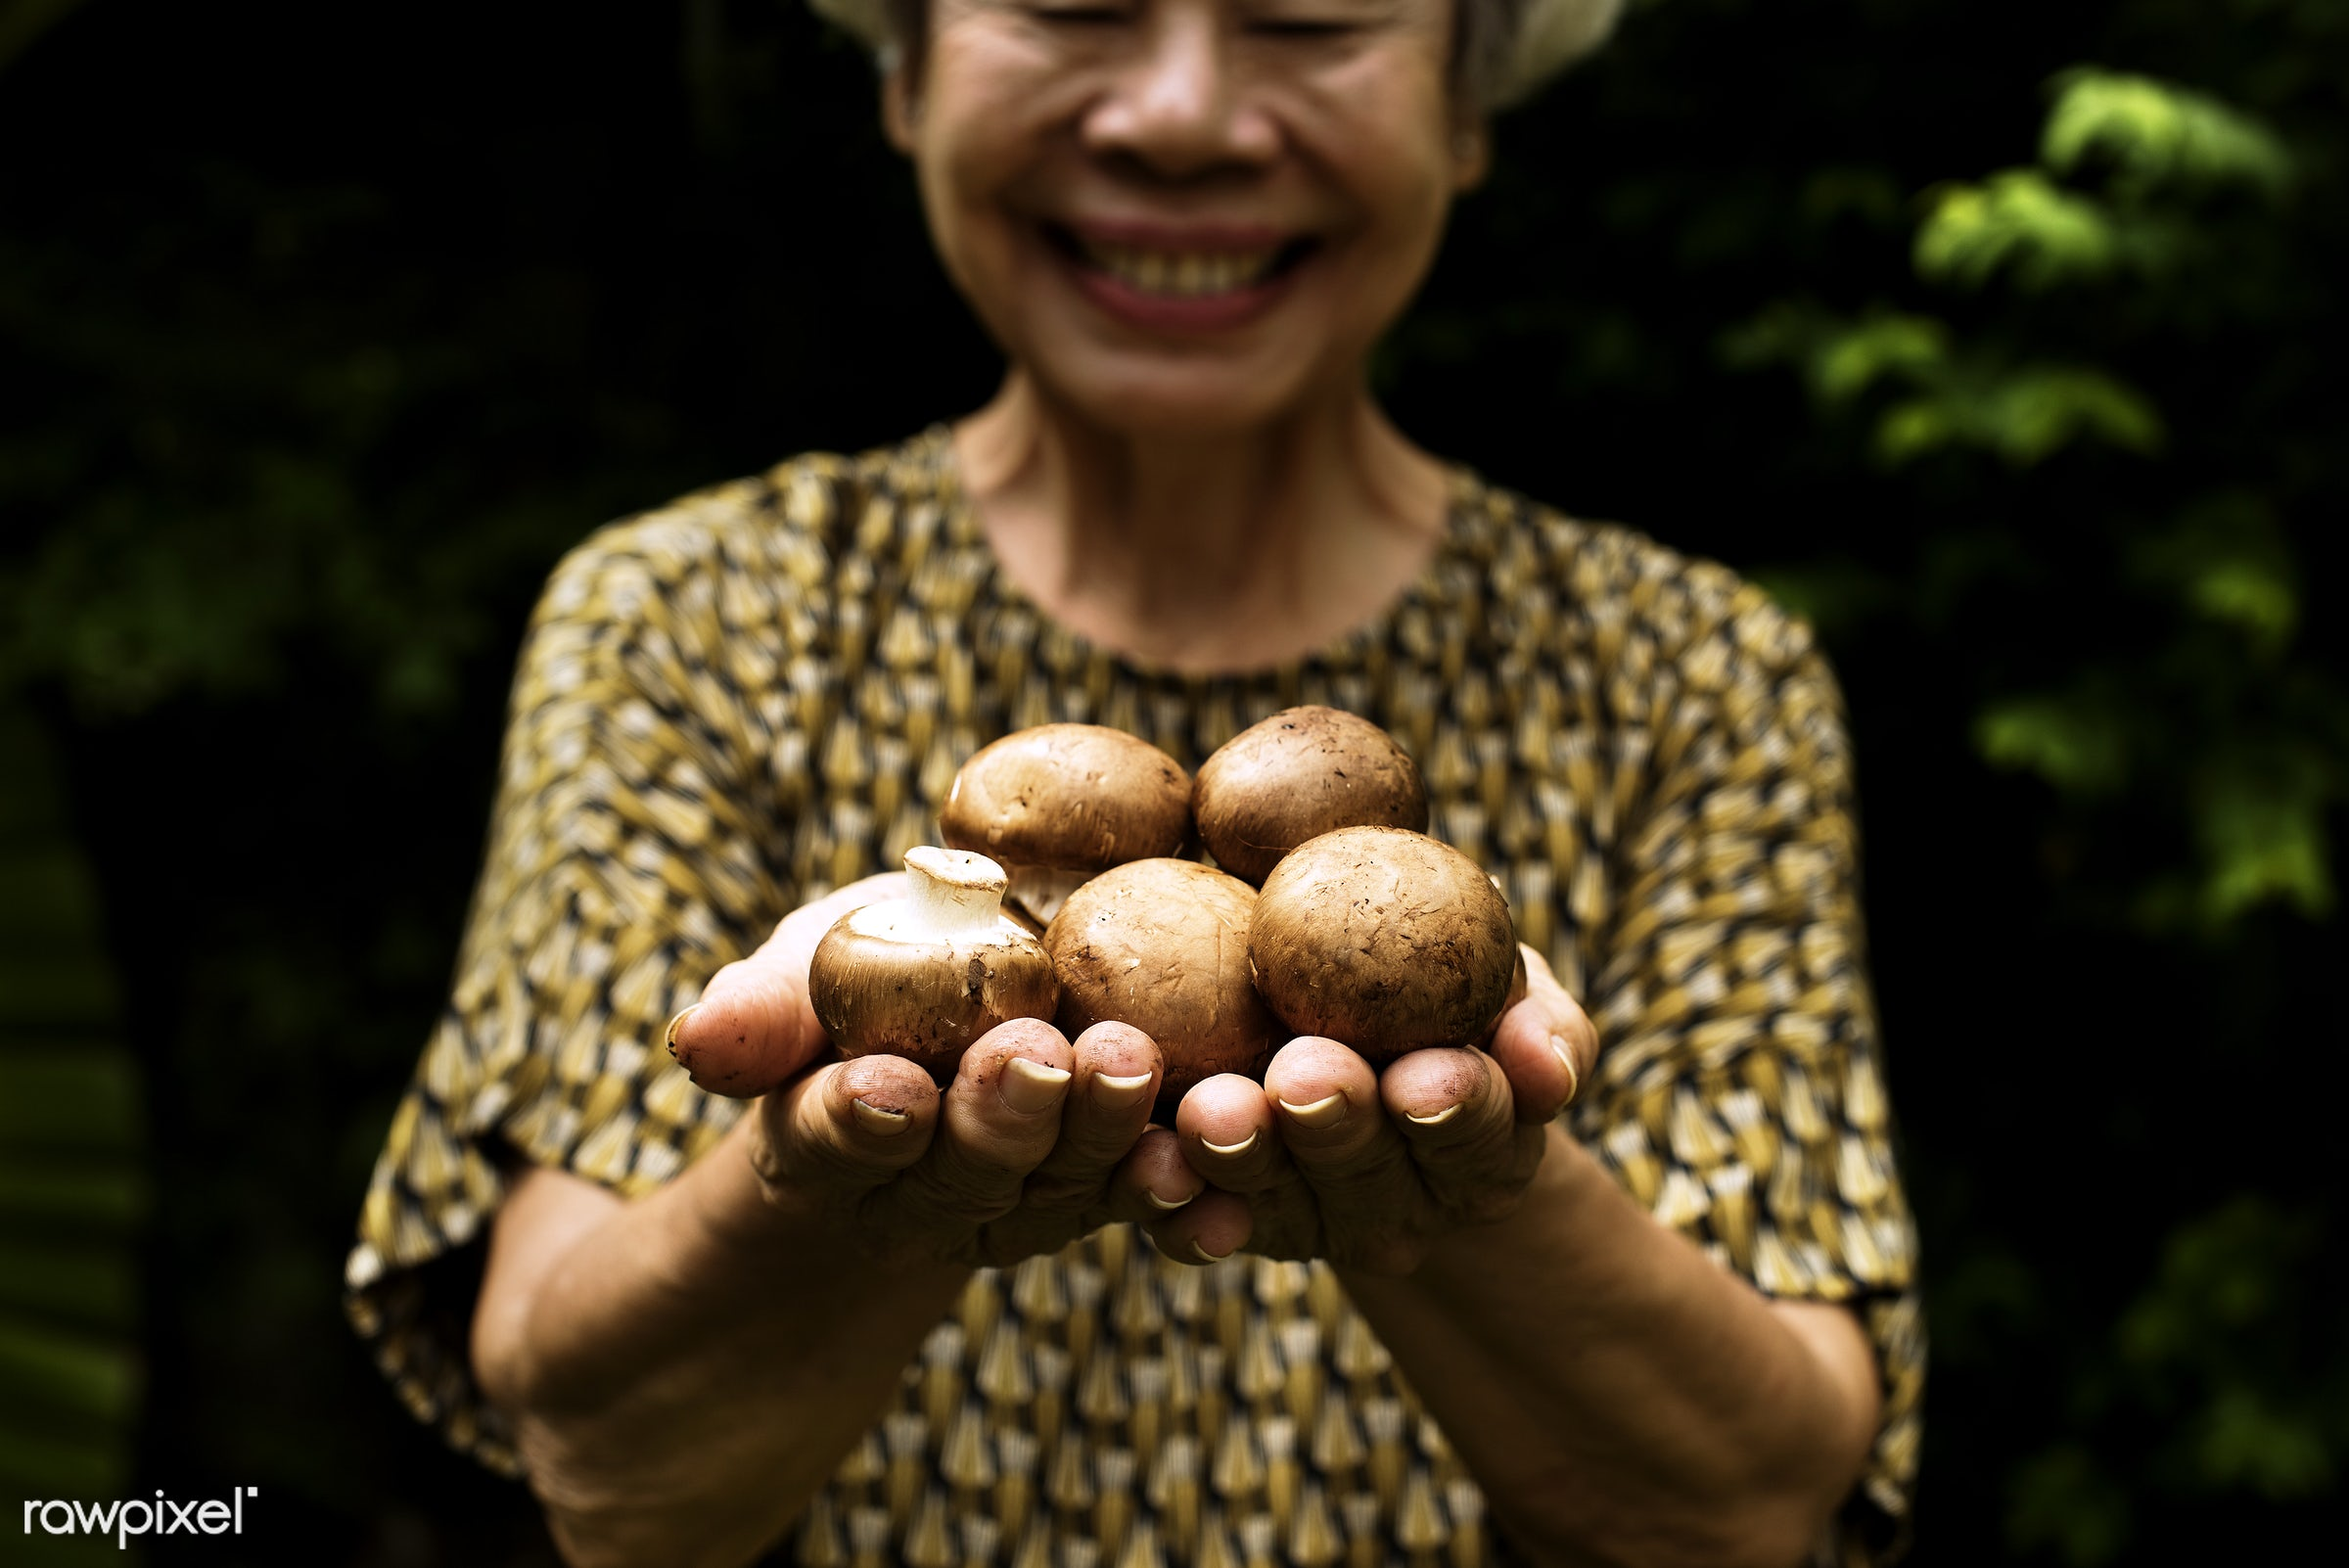 mushroom, plant, raw, cuisine, people, crop, hands, fresh, woman, pick, cultivation, ingredient, agriculture, farming,...